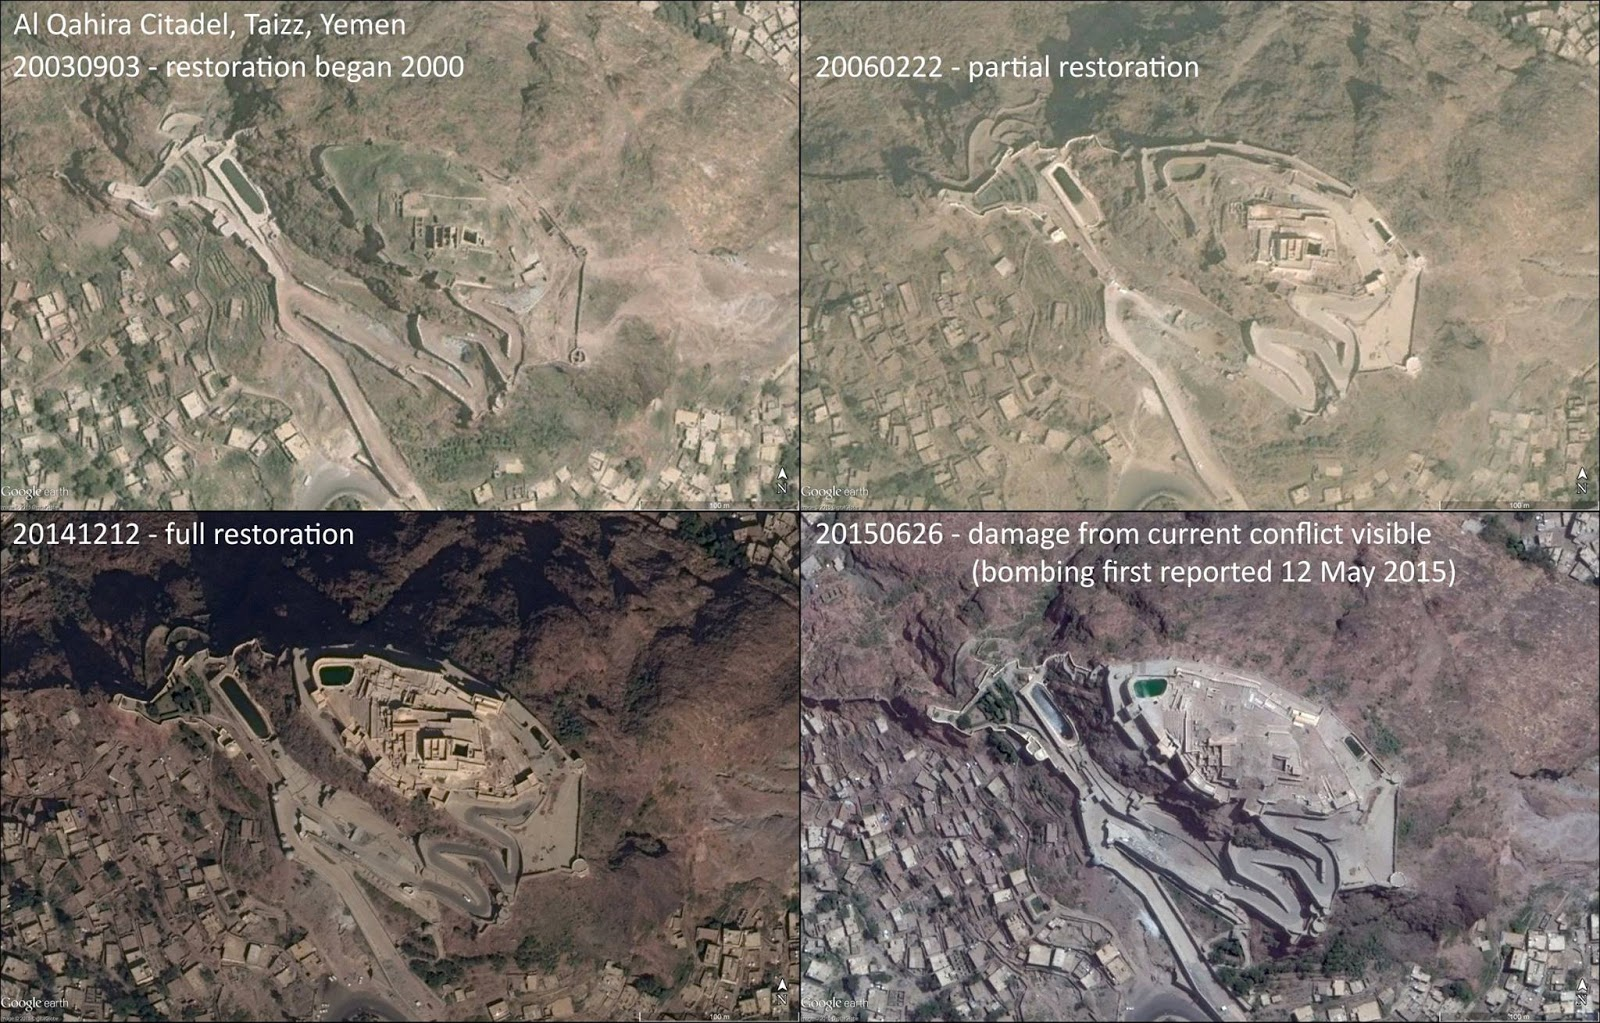 AlQahera Castle Taiz Yemen Before and After Site was Struck by